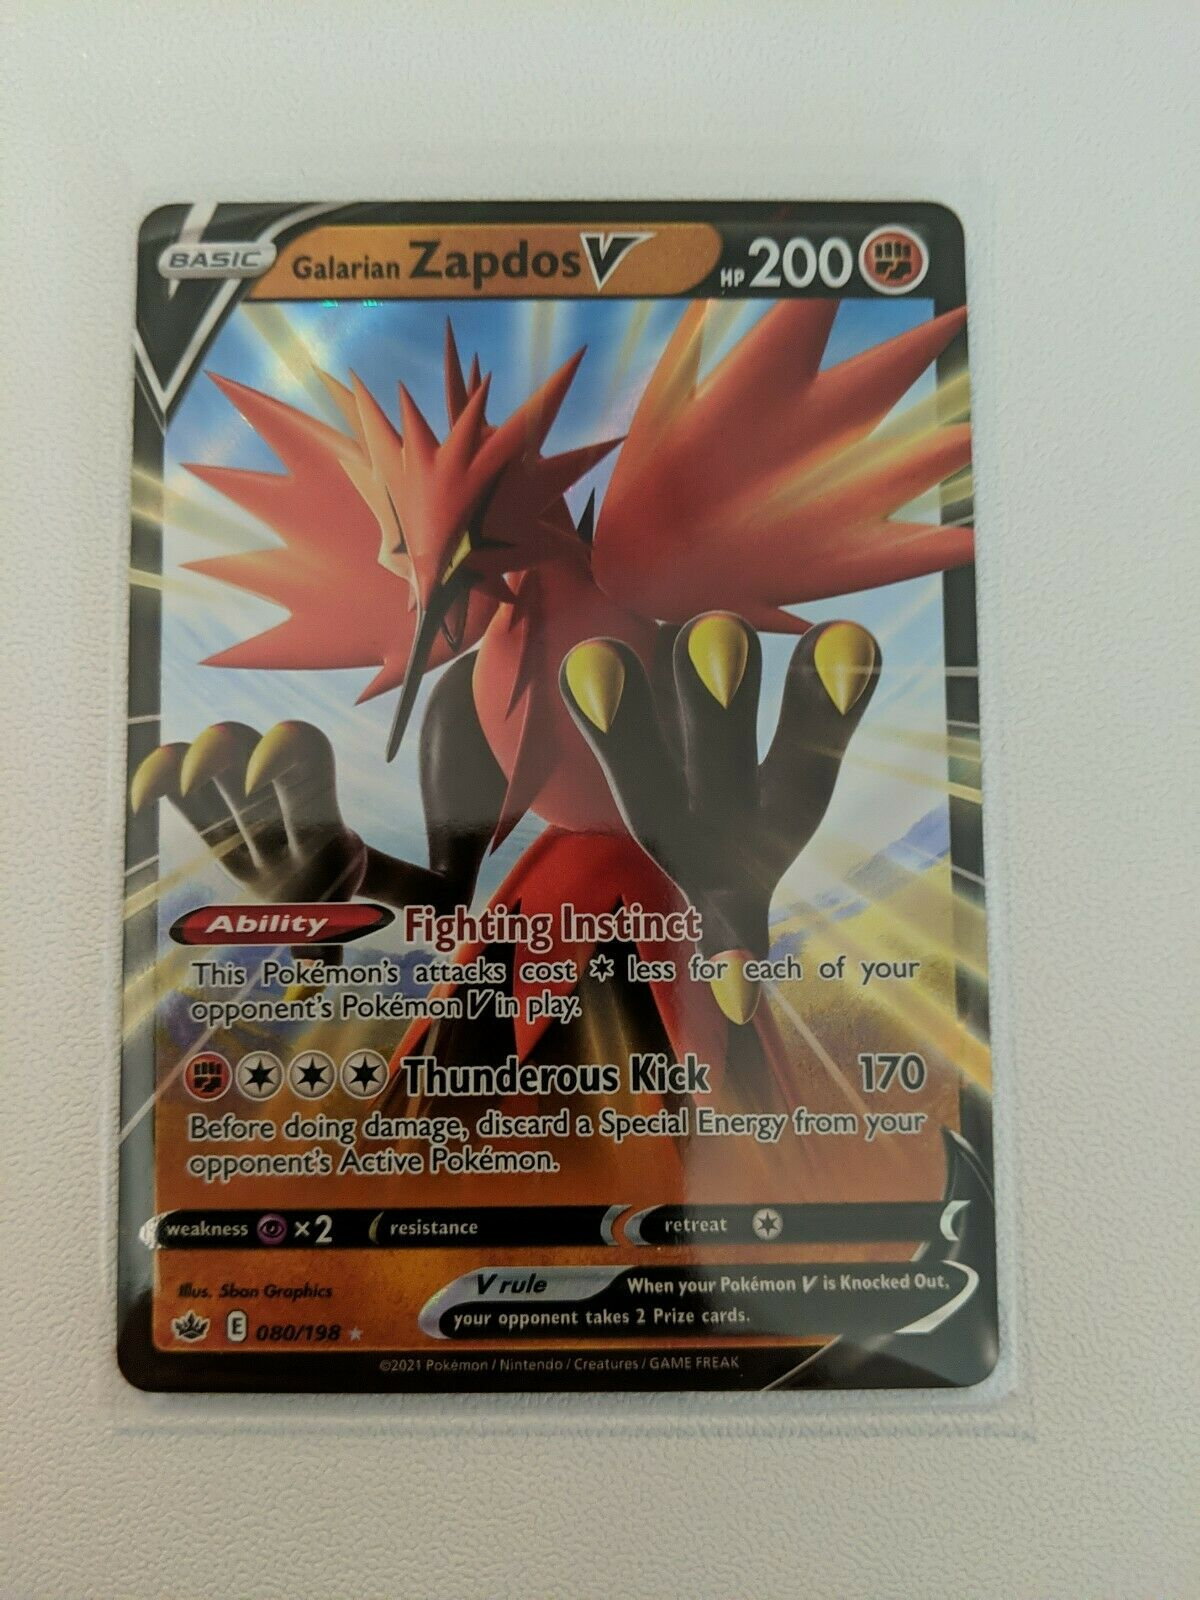 Galarian Zapdos V Pokemon Chilling Reign Card 080/198 Mint Condition